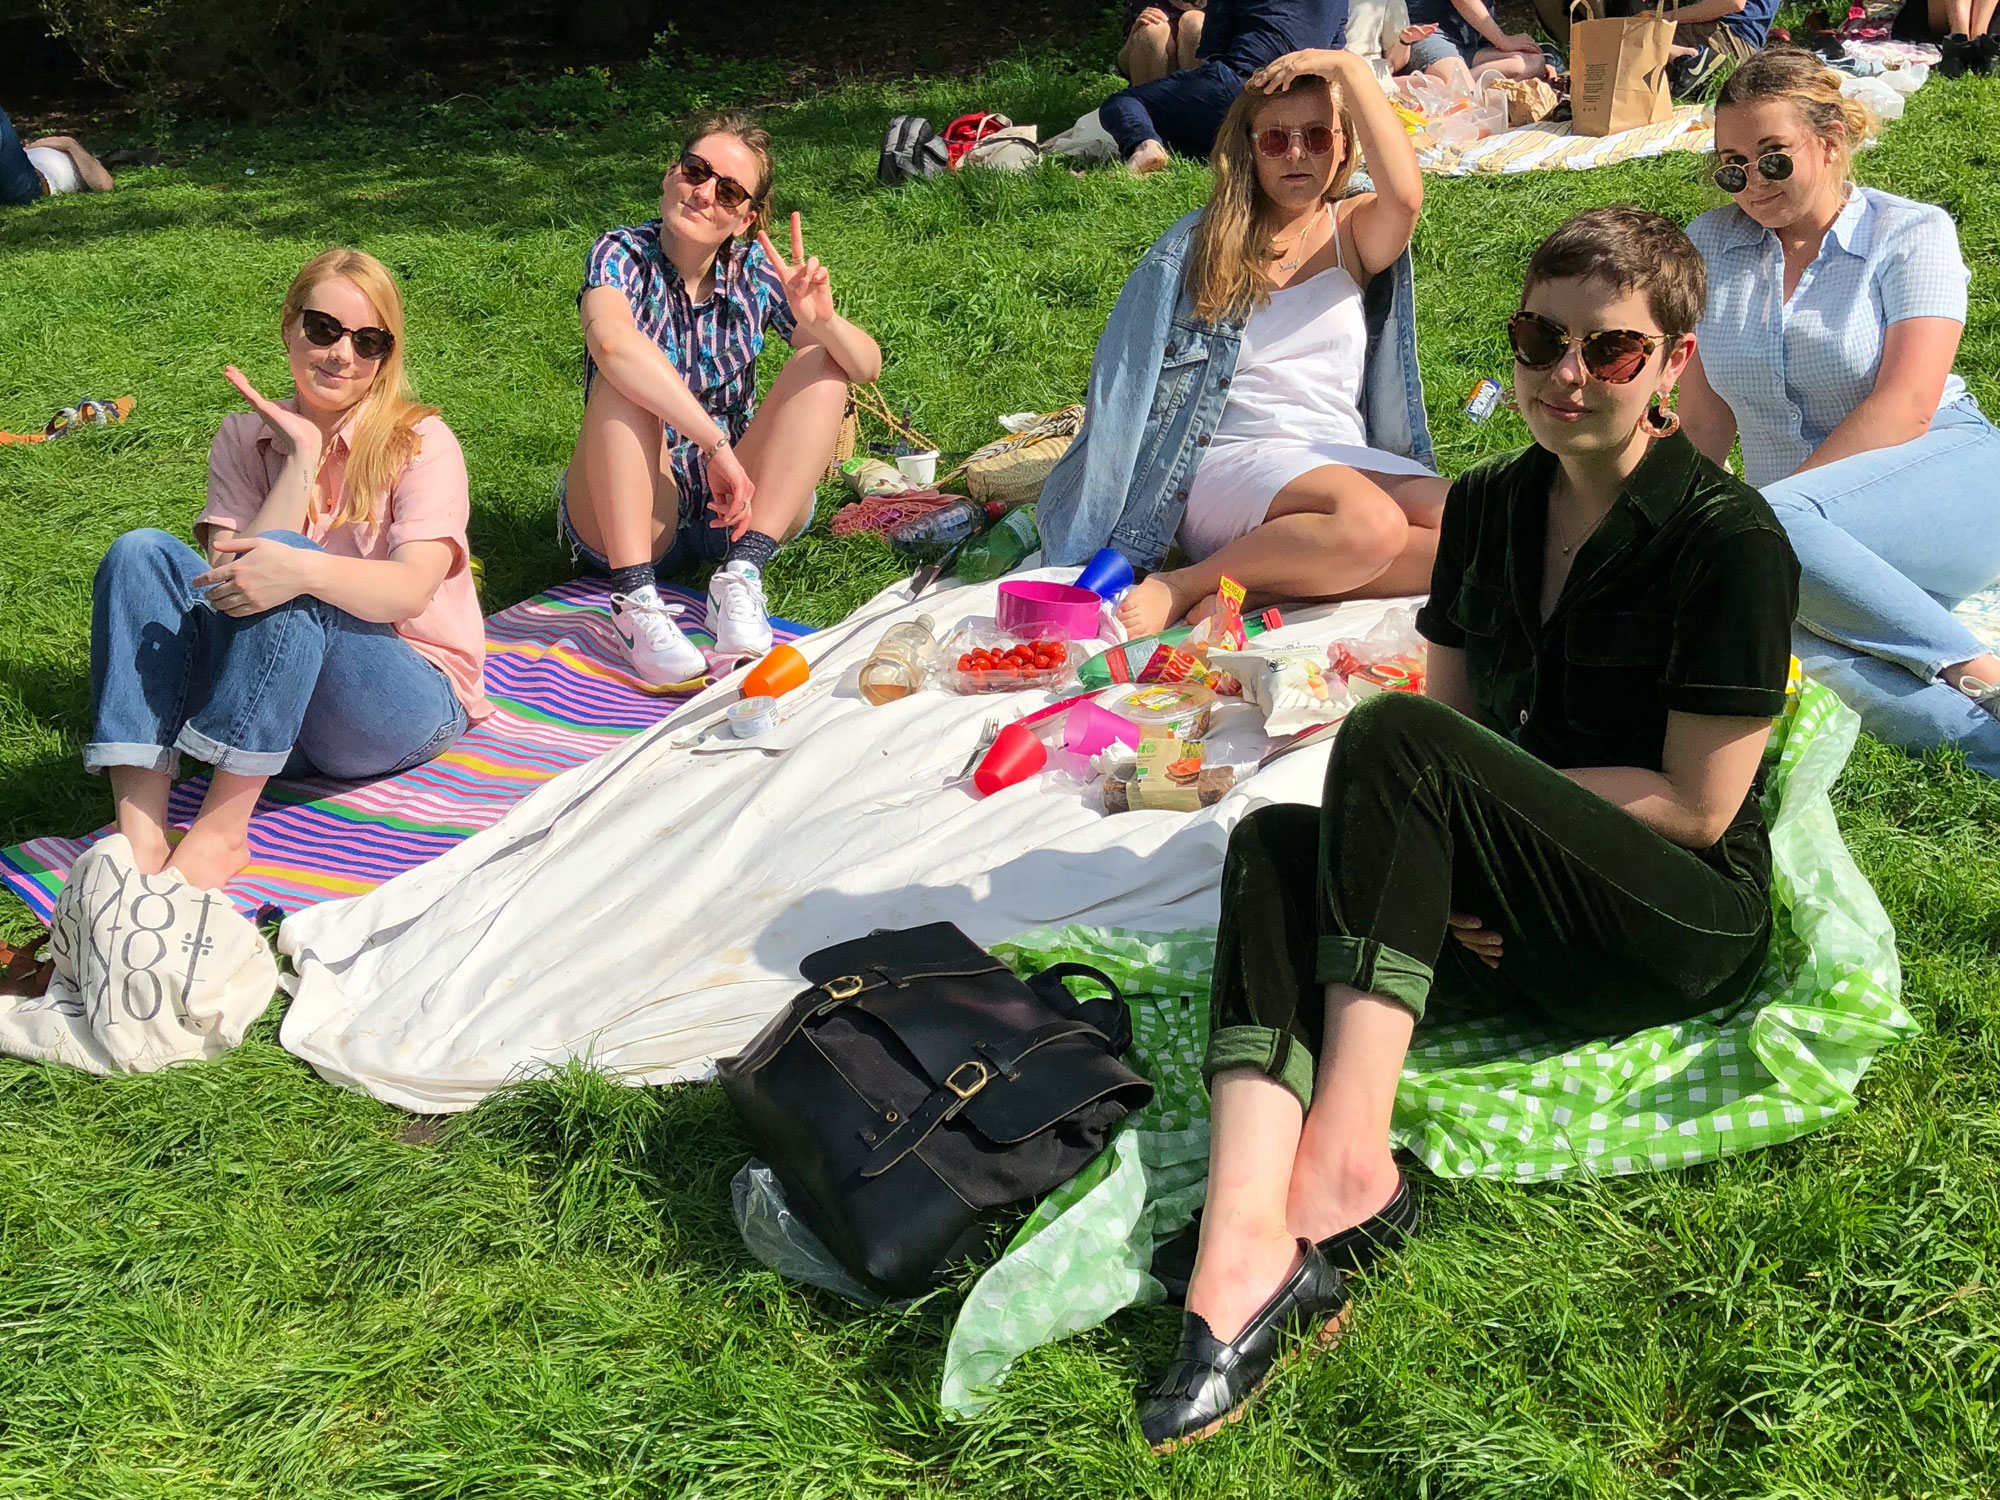 Six students enjoying a picnic in Paris France.